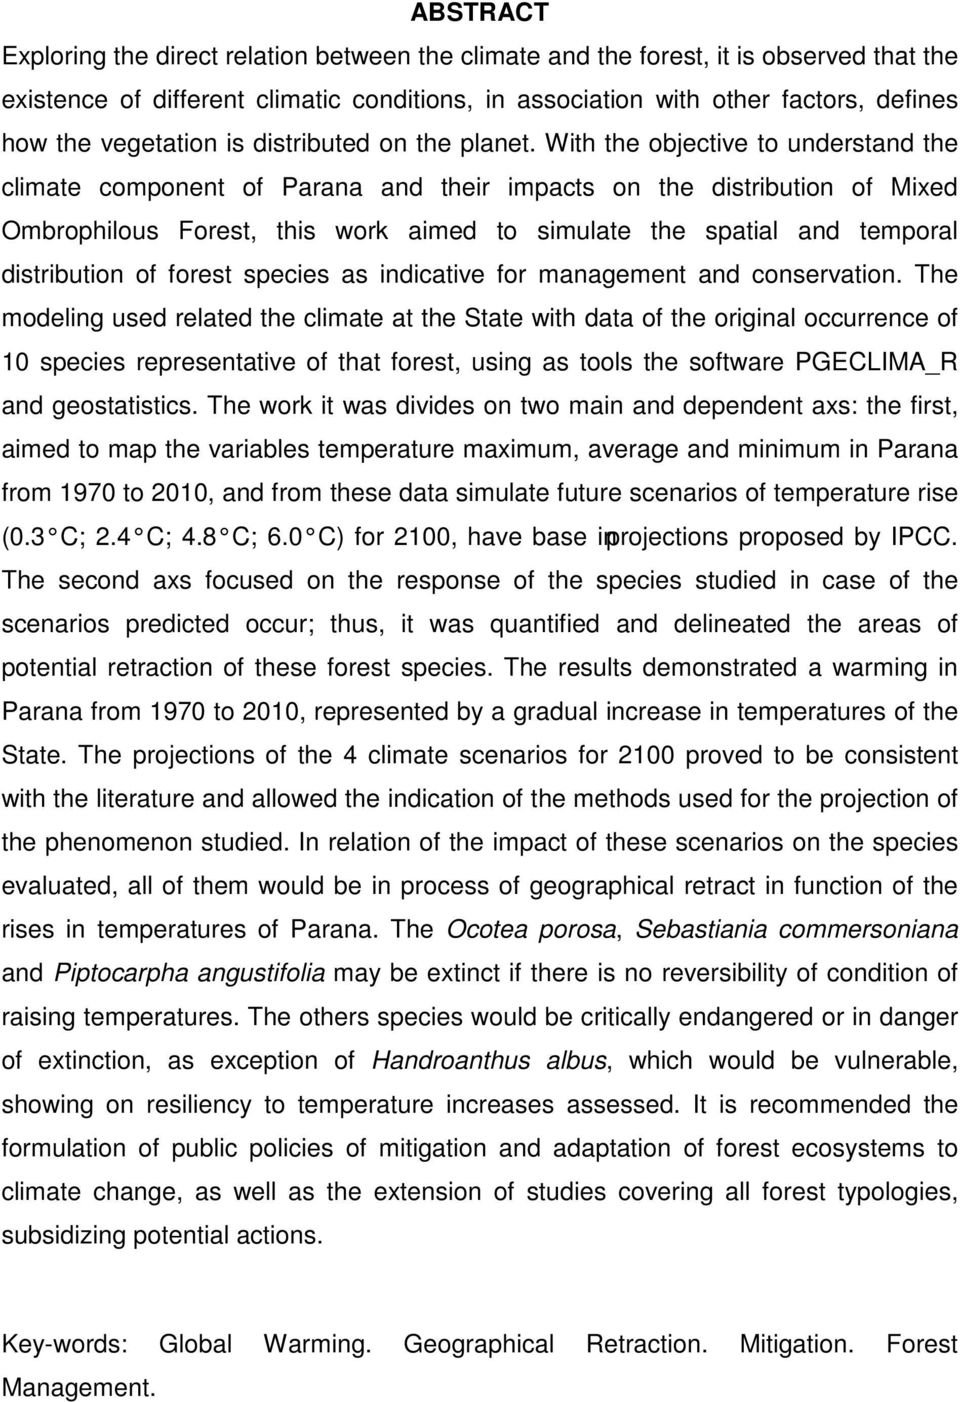 With the objective to understand the climate component of Parana and their impacts on the distribution of Mixed Ombrophilous Forest, this work aimed to simulate the spatial and temporal distribution